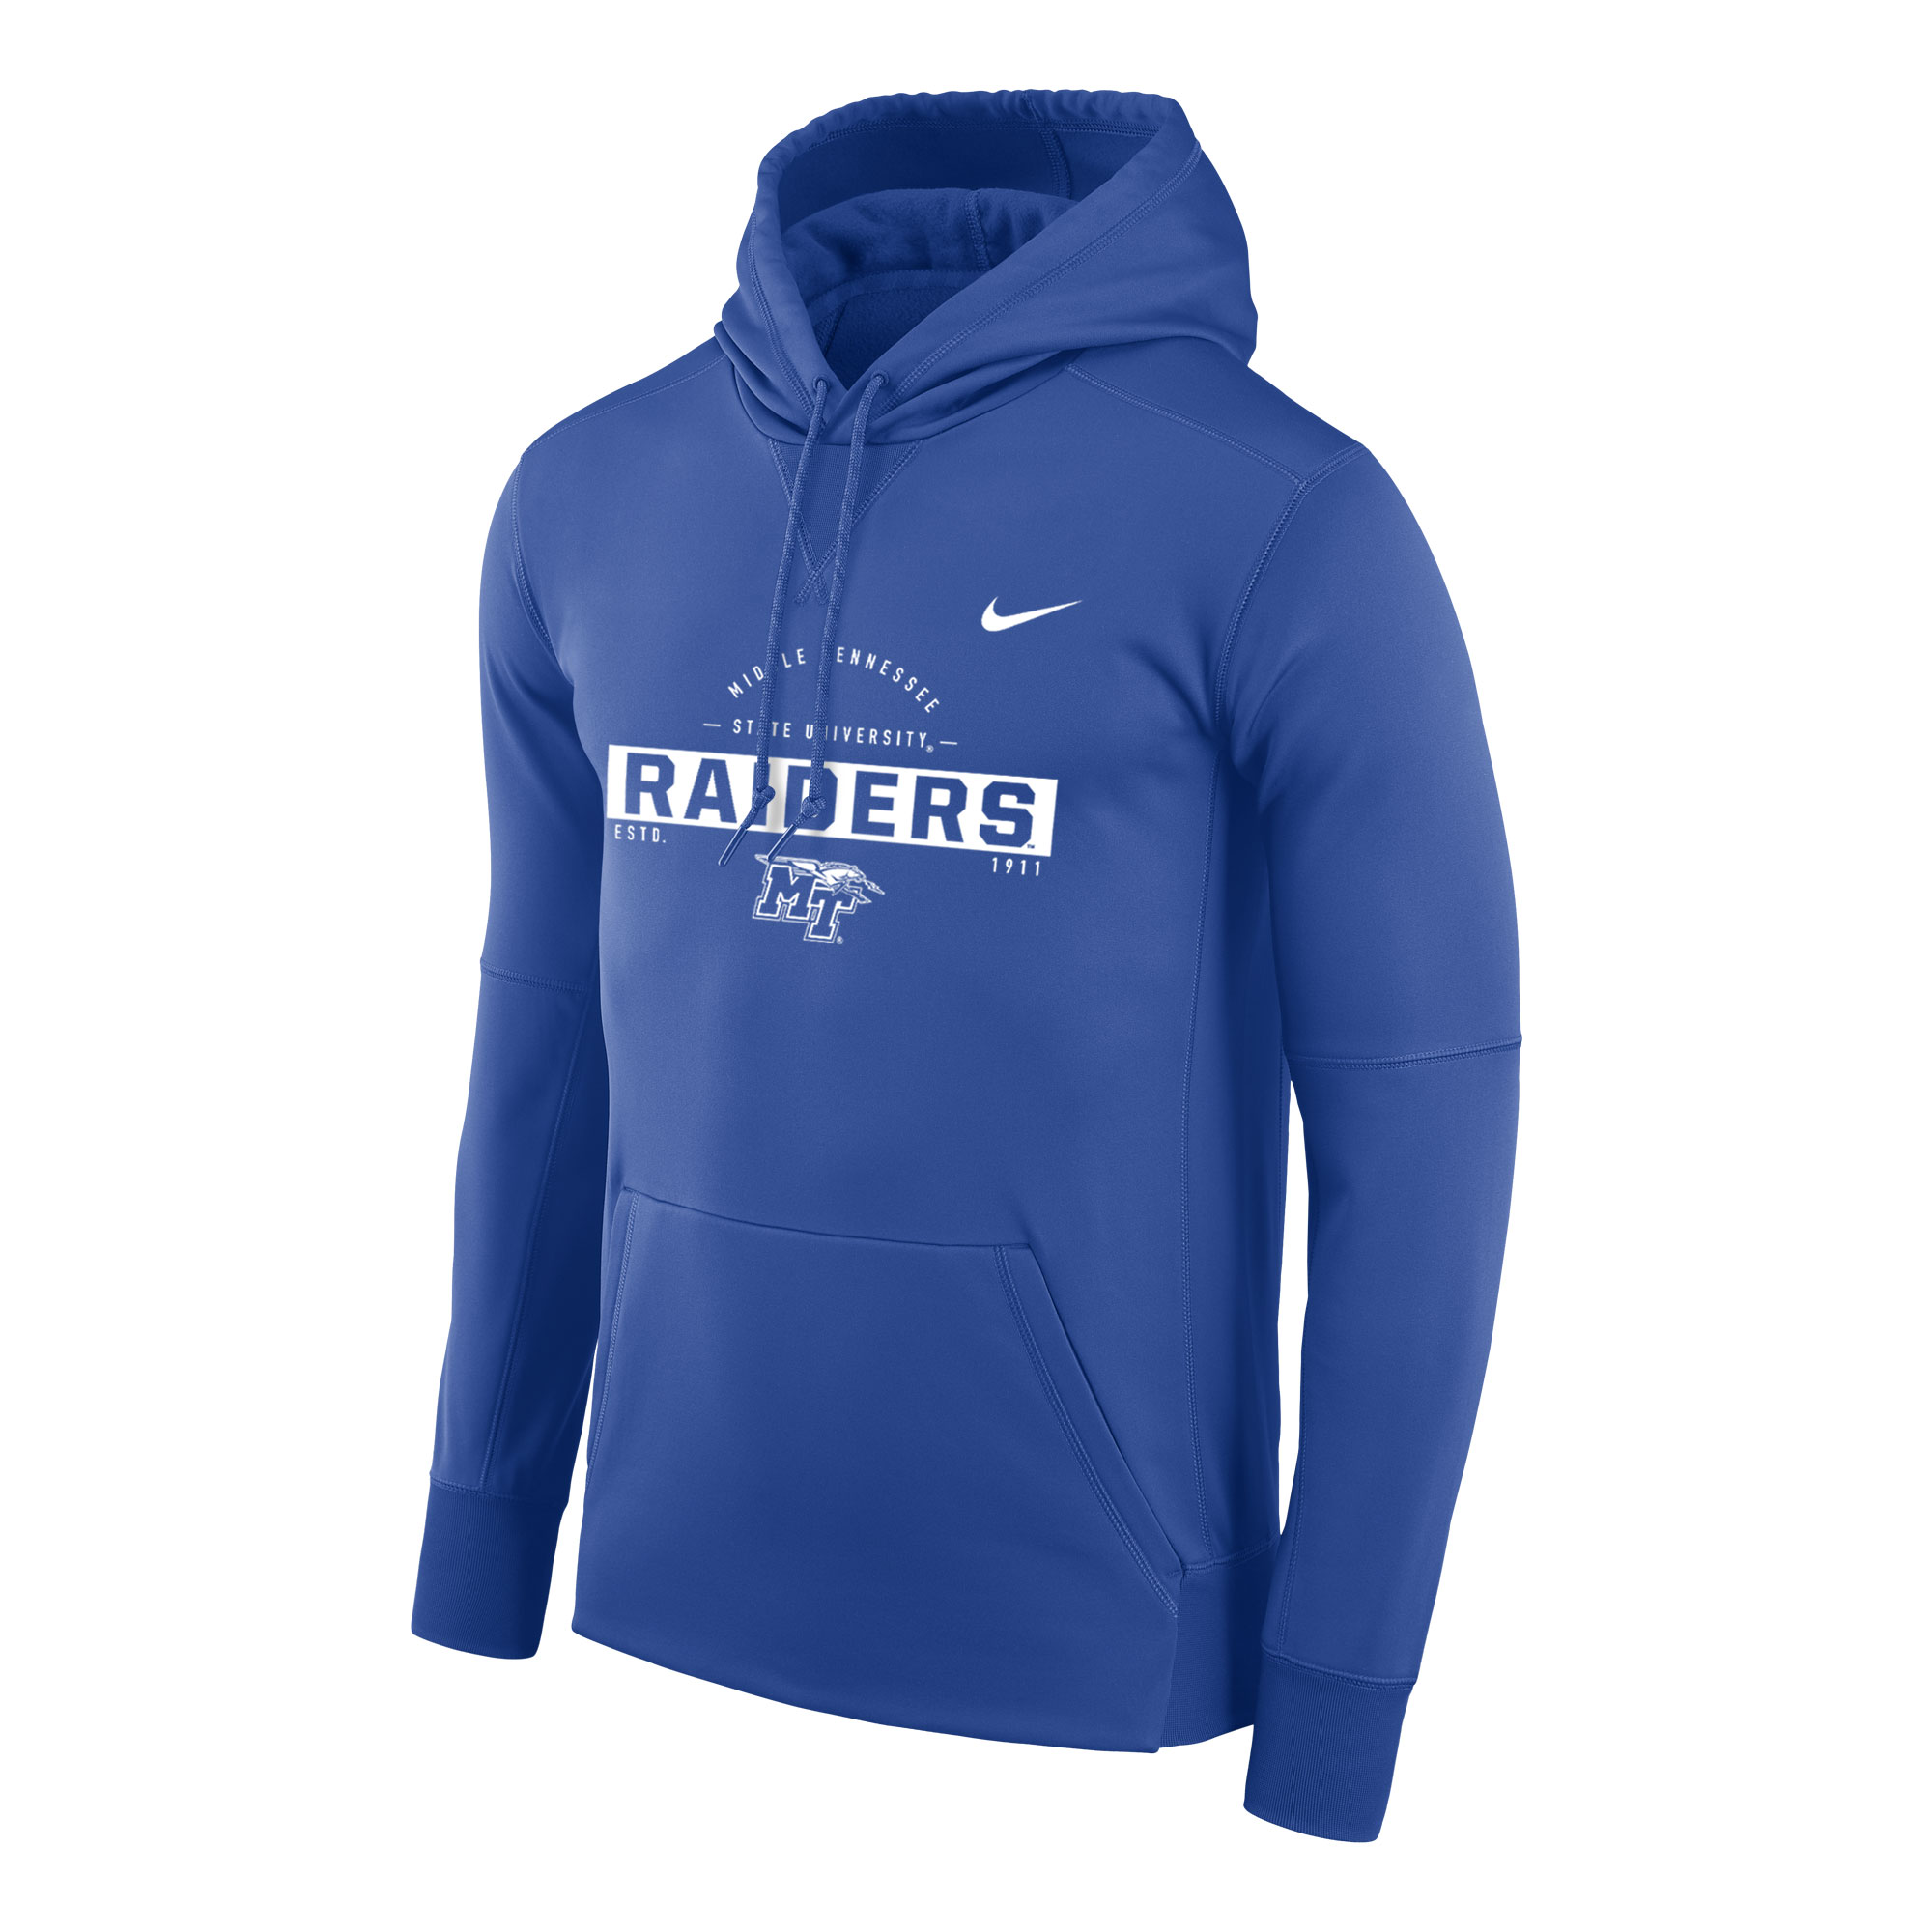 Middle Tennessee State University Raiders Nike® Therma PO Hoodie